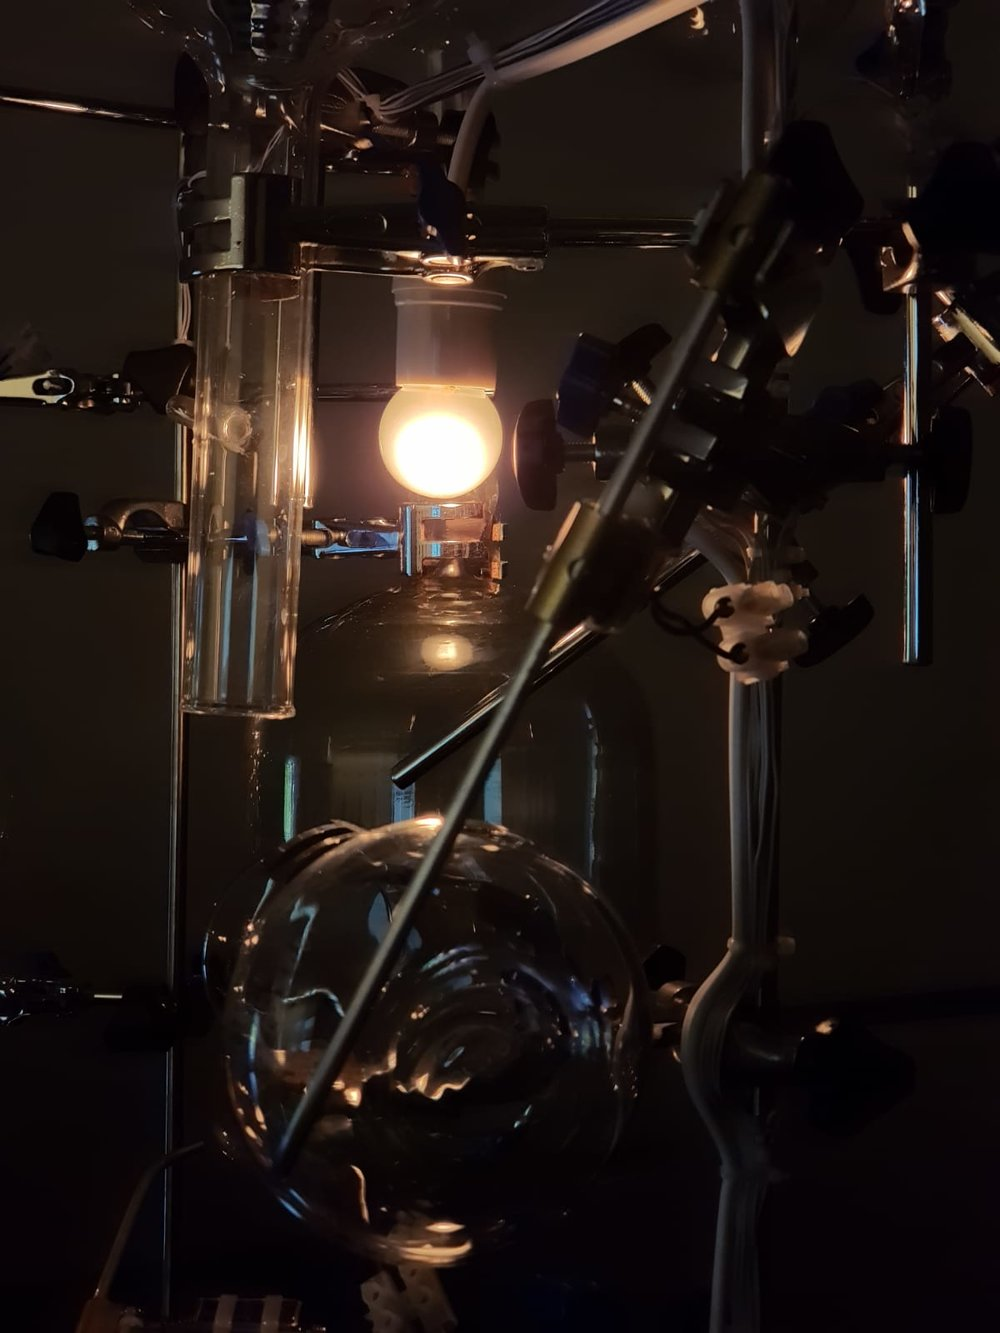 Zul MAHMOD  No Substance (Trunk) 1 to 5  (details) 2019 Solenoids, science apparatus, microcontroller, midi player and metal (10:00 mins) Dimensions variable